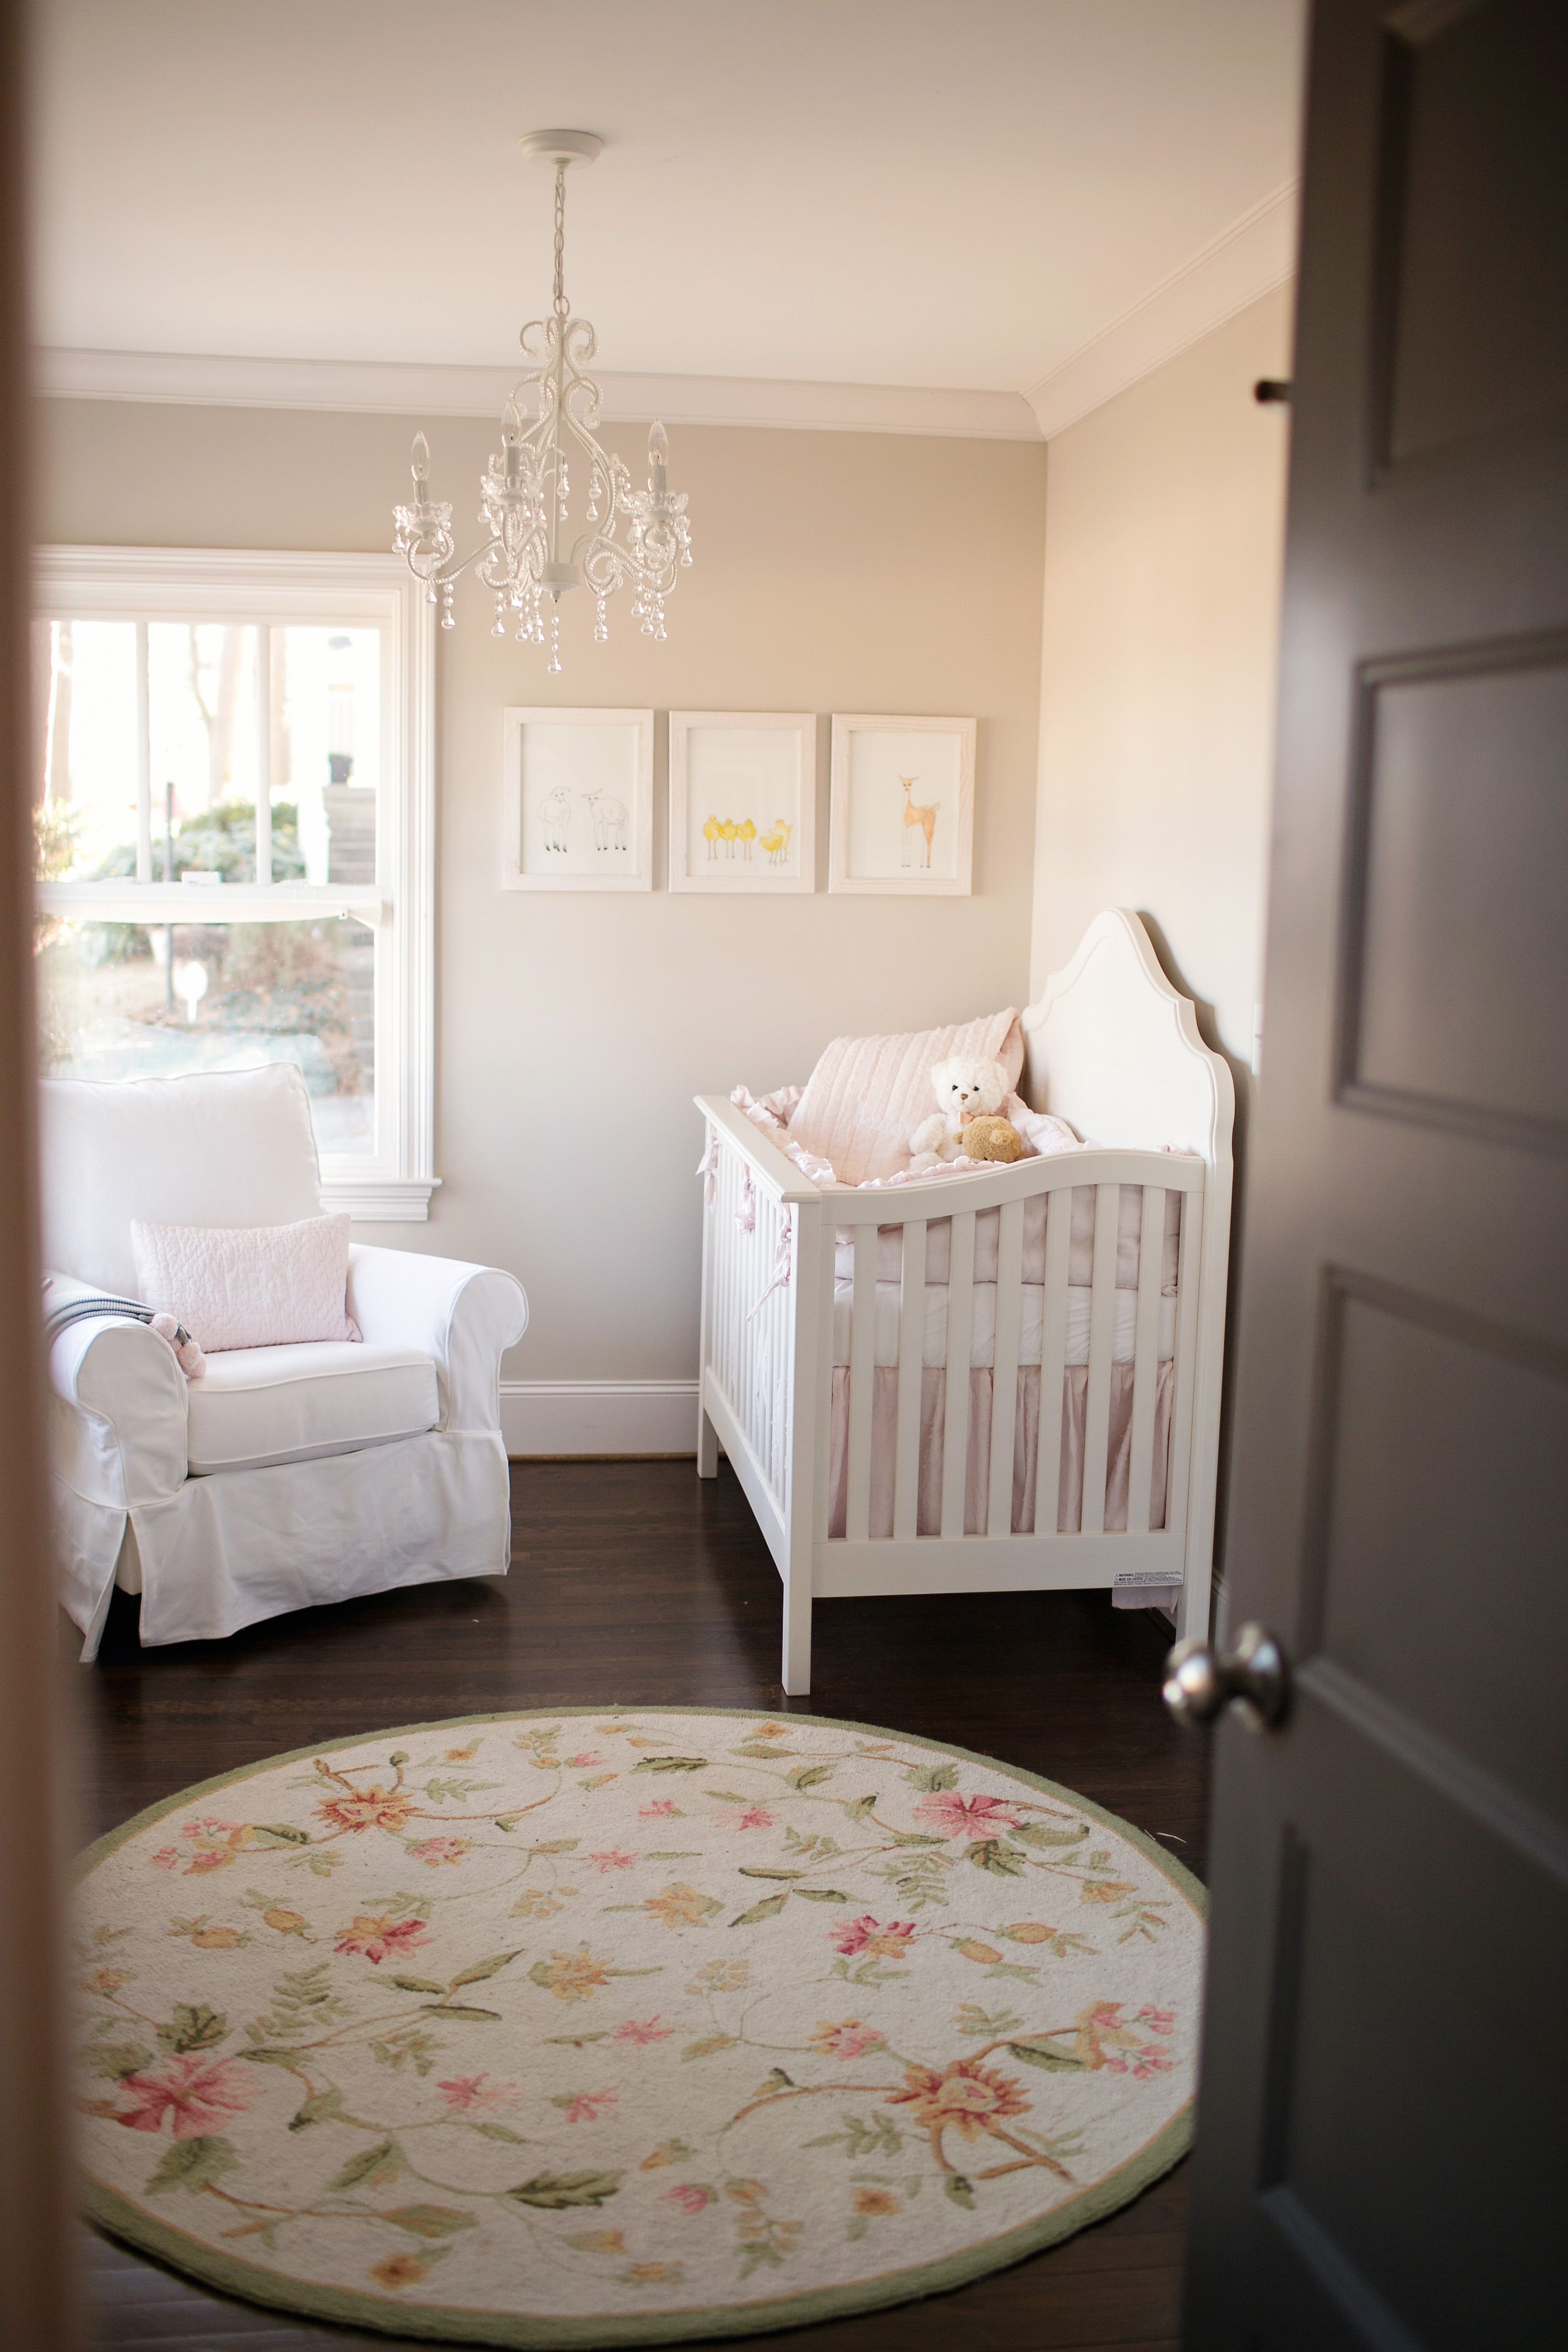 Baby Girl Nursery Lighting Designing For A Brand New Baby In A Brand New Space Lighting